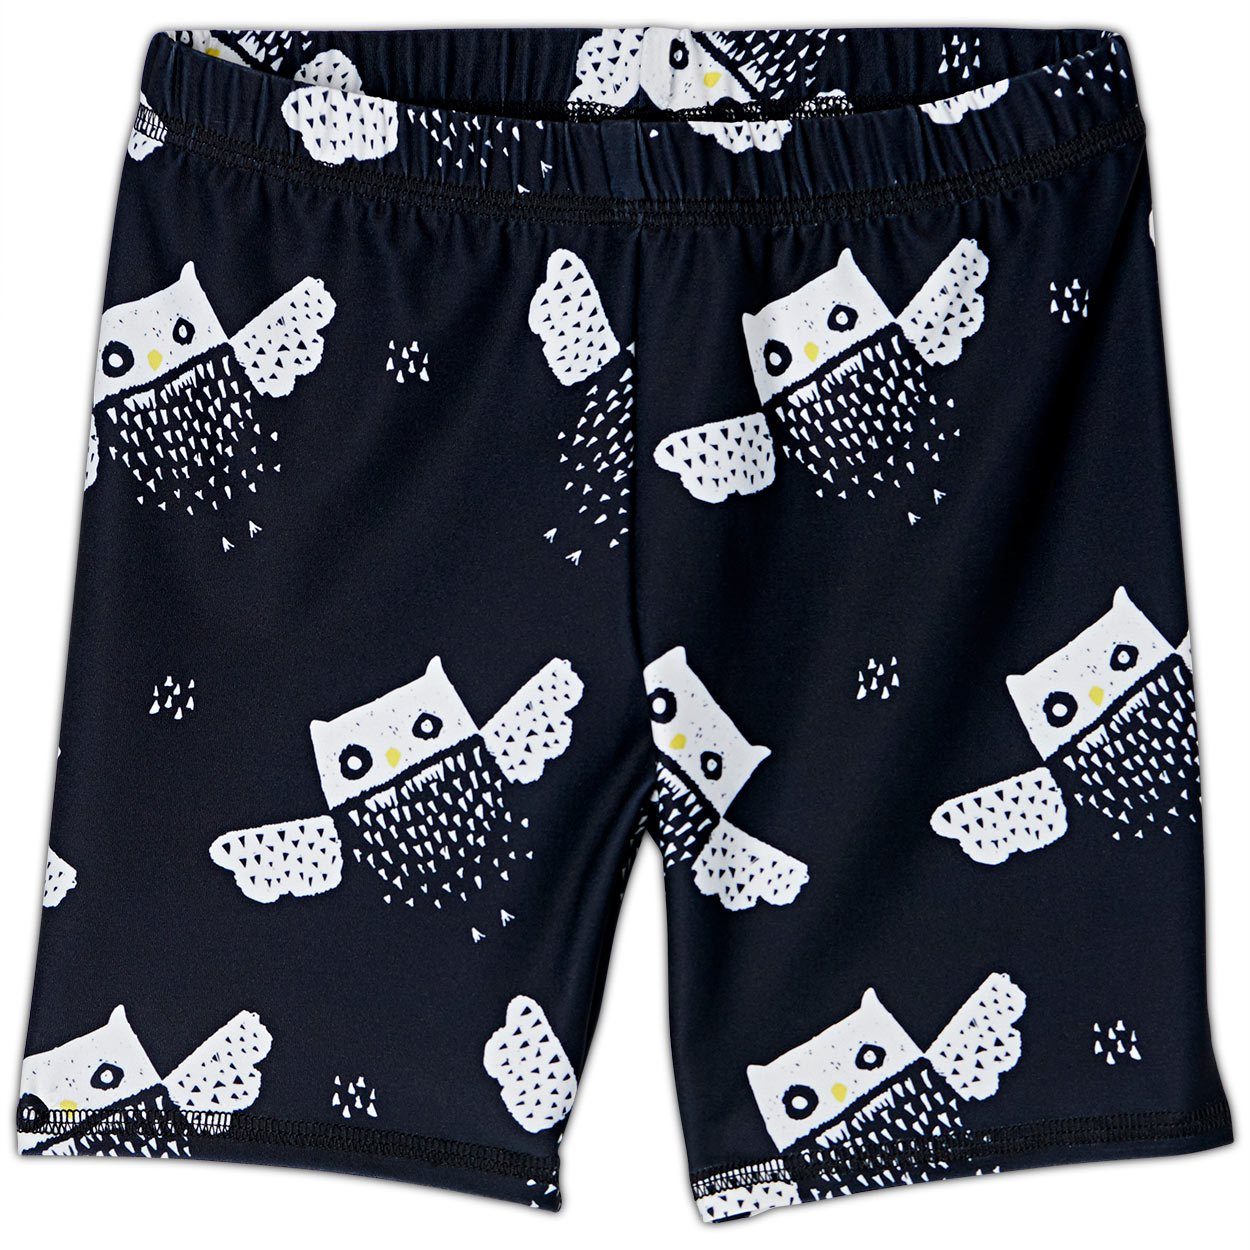 Owls Sunblocker Shorts UPF 50+